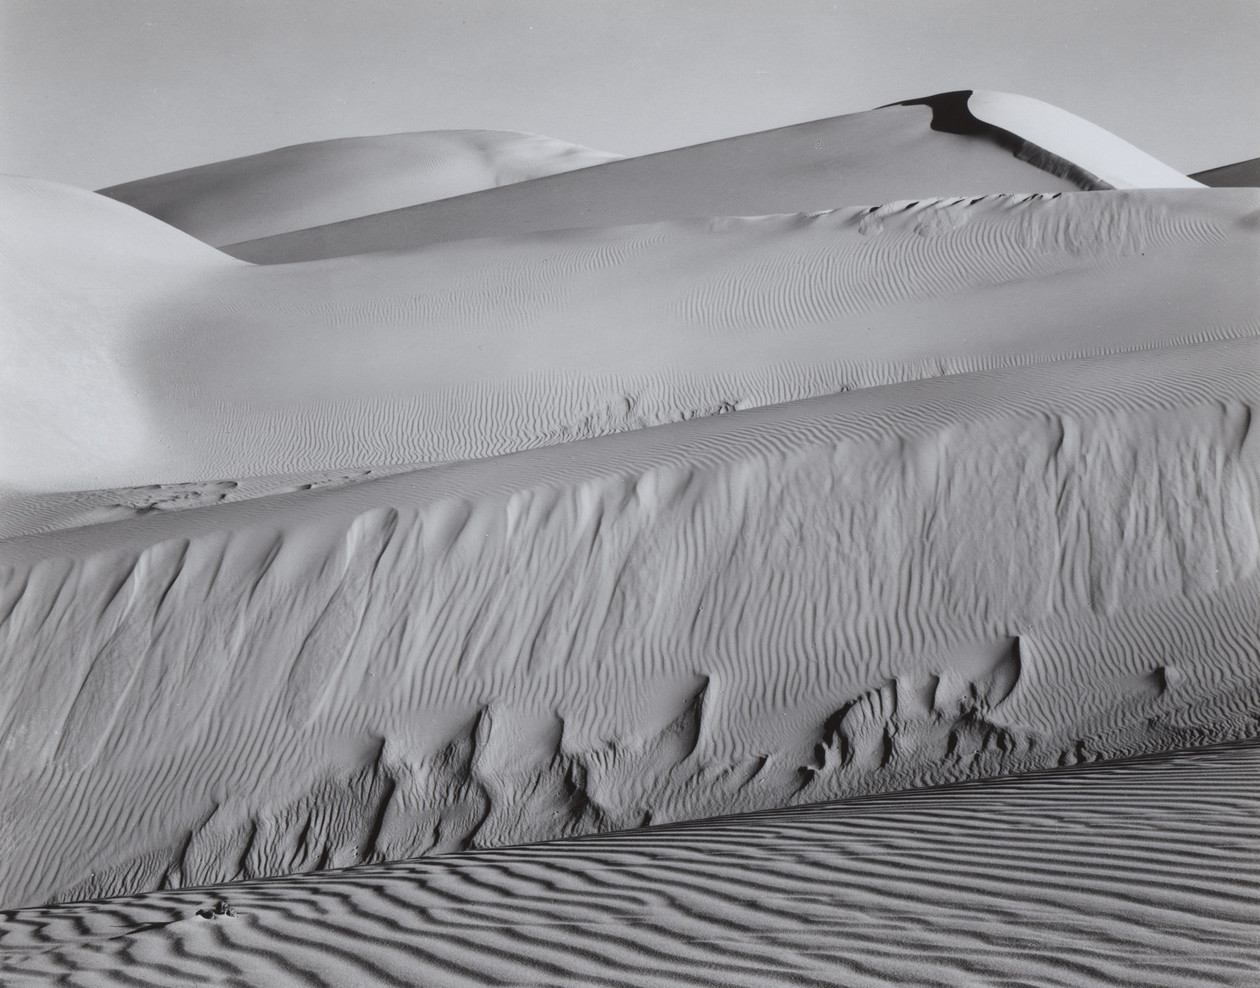 Dunes, Oceano (1936) by Edward Weston